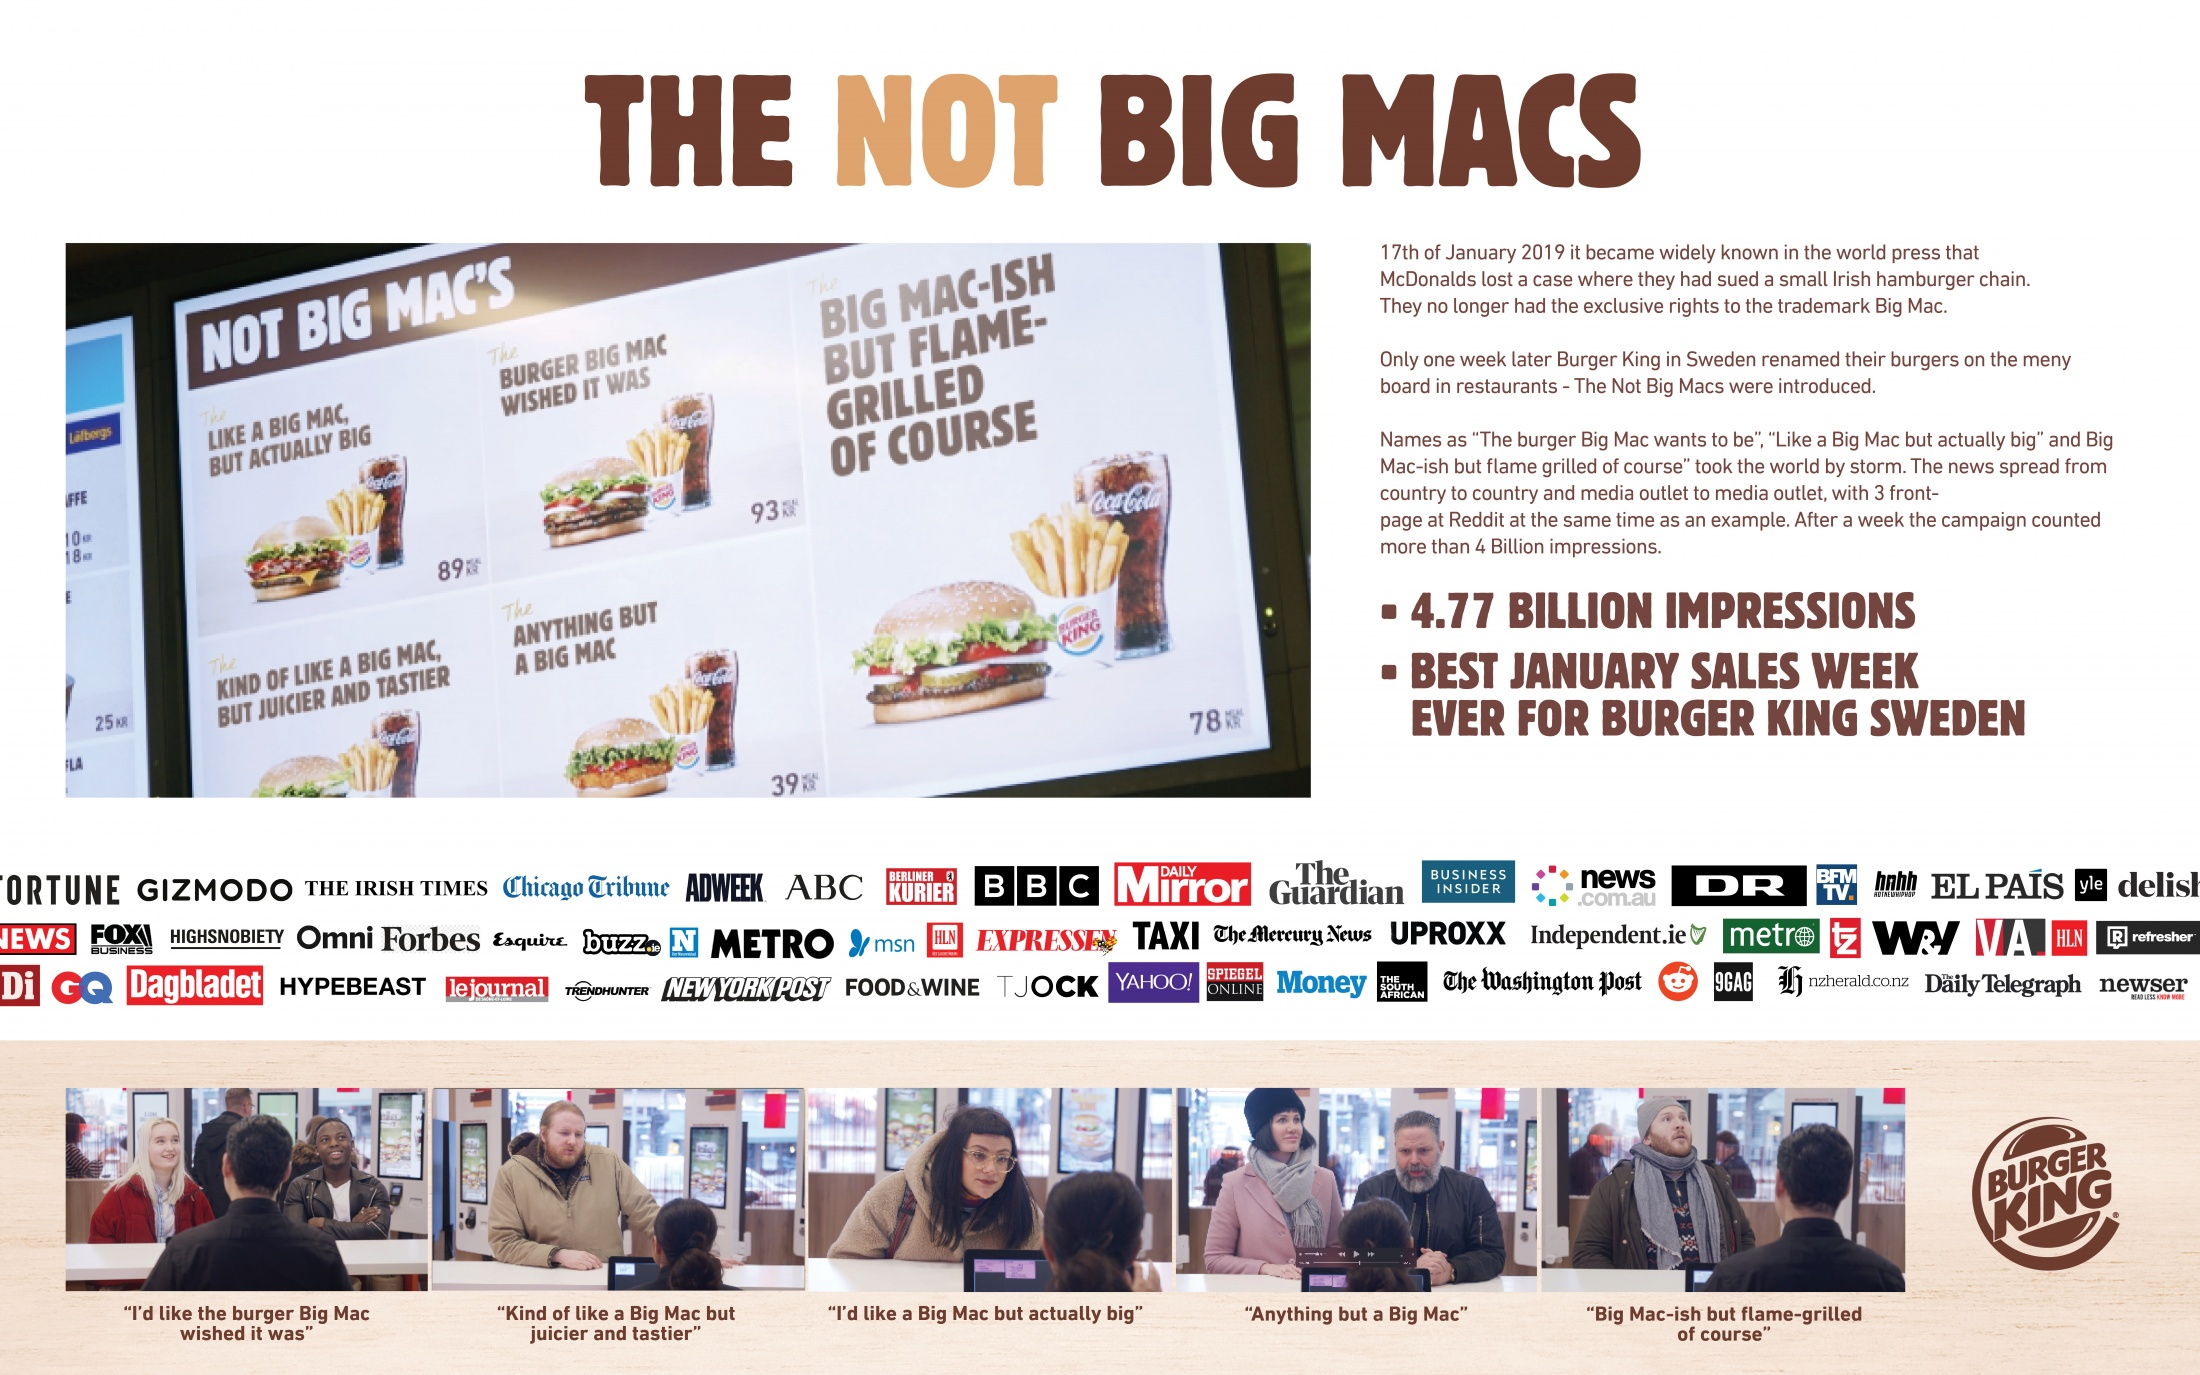 Image Media for The Not Big Macs